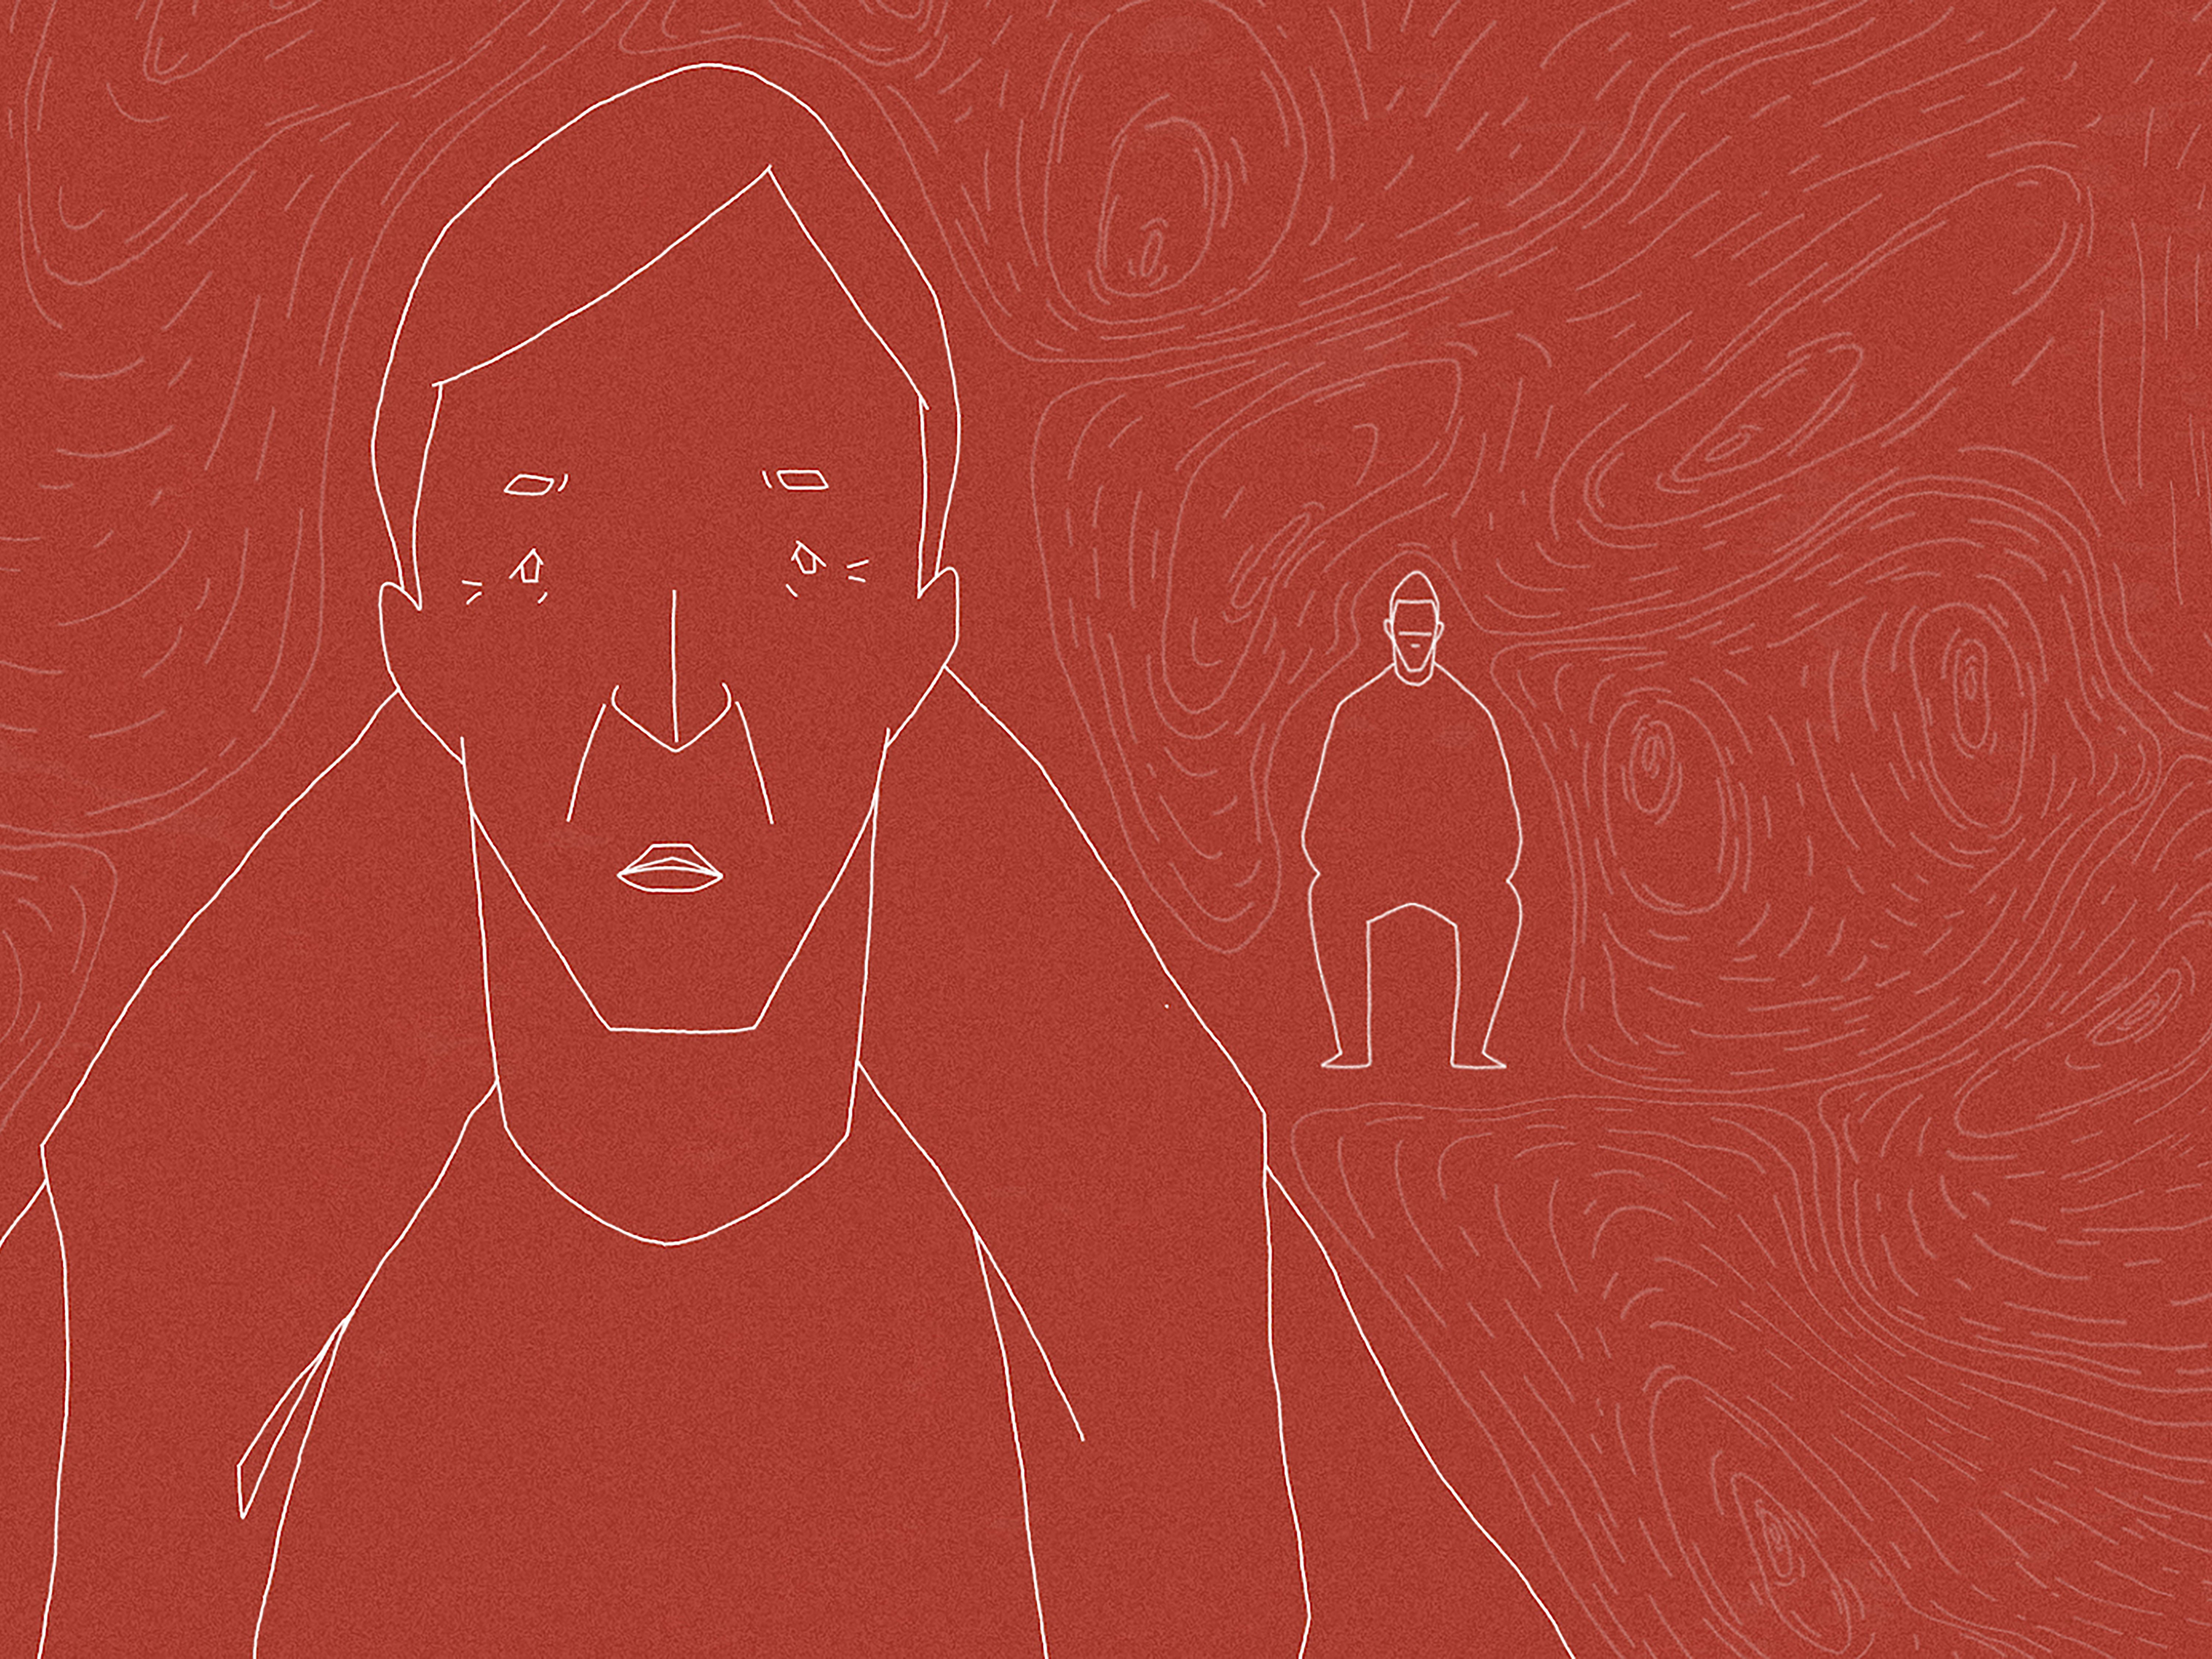 White line work animation of two male figures on a red background